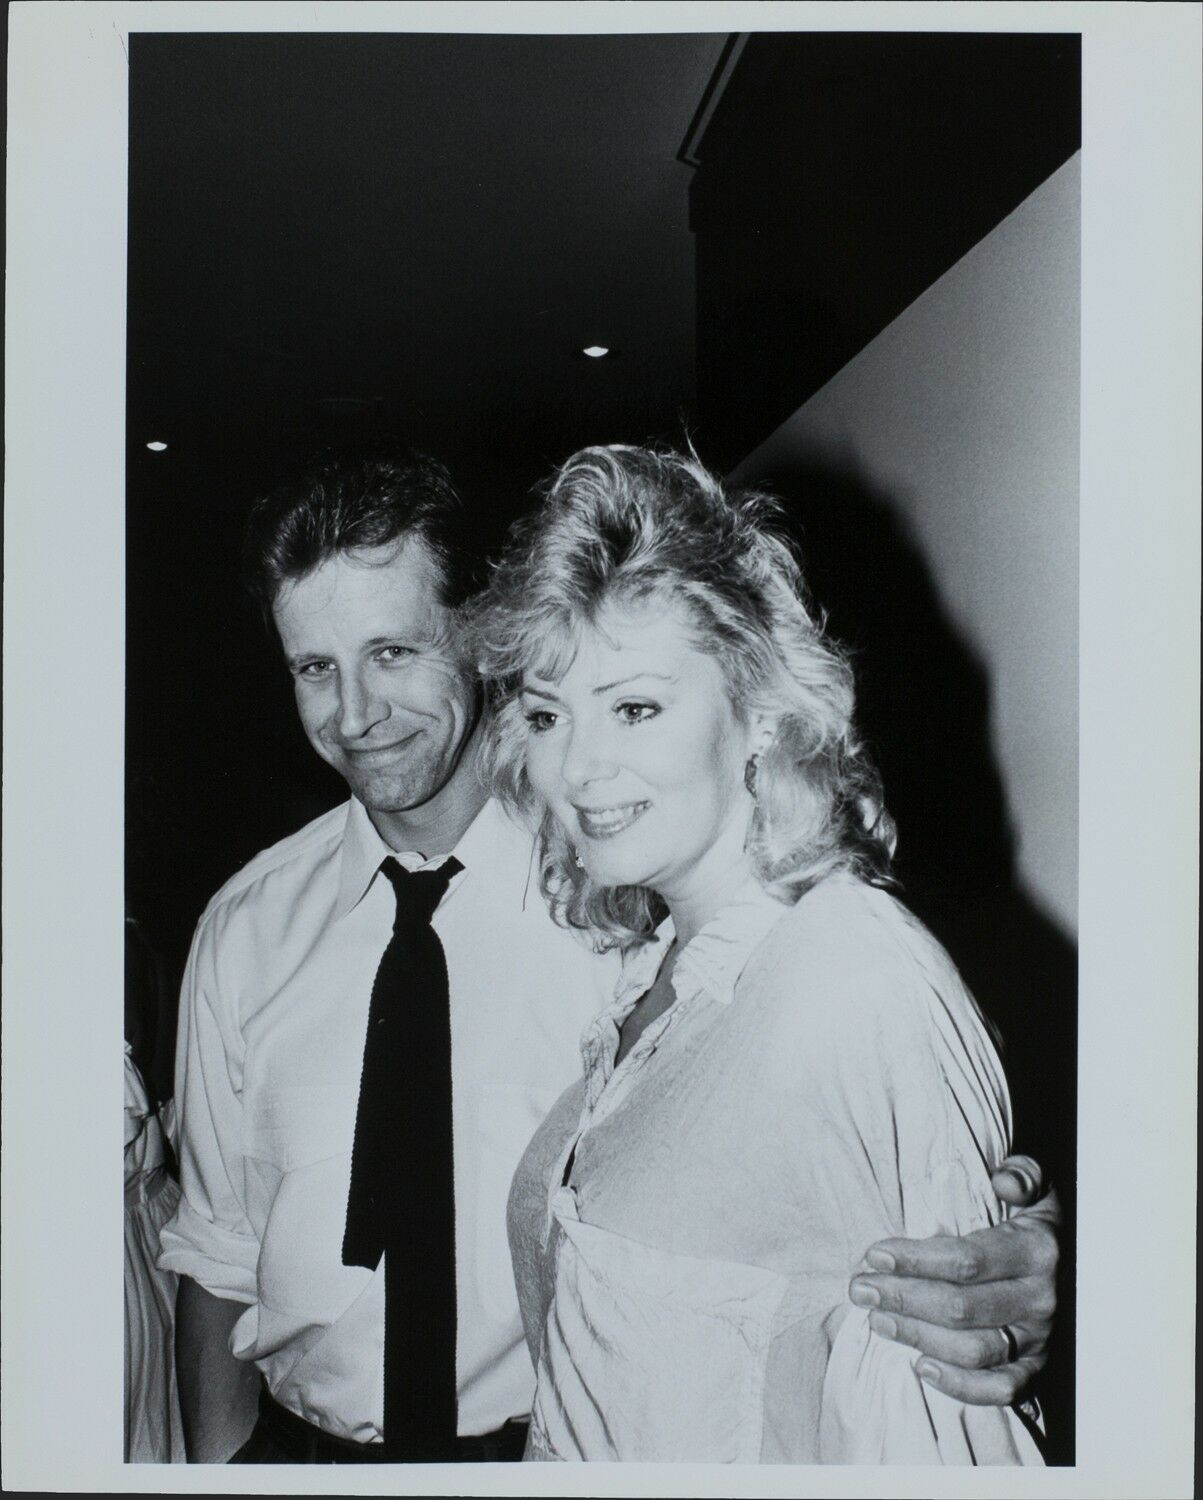 Richard Gilliland Actor Jean Smart Actress Original Photo Hollywood Candid Ebay See what richard gilliland (richdib) has discovered on pinterest, the world's biggest collection of ideas. richard gilliland actor jean smart